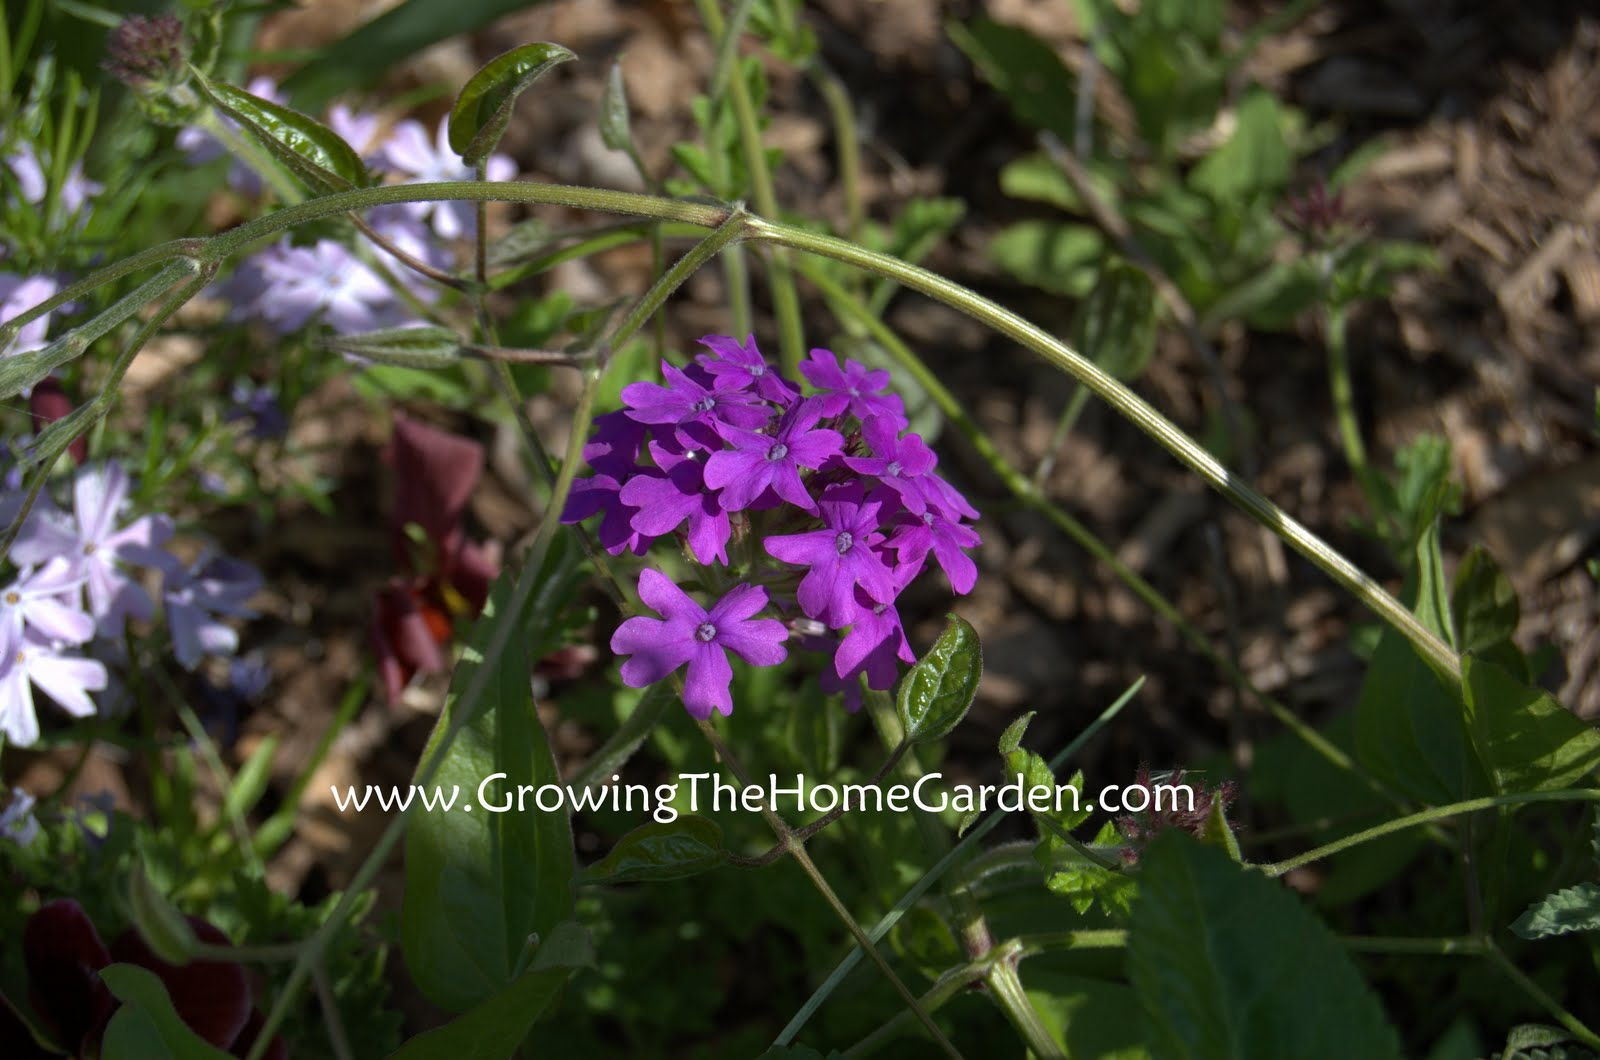 Purple%2BHomestead%2BVerbena%2Bblooming%2Bin%2BApril%2B4 2011 1 Former City of Homestead Assistant Manager Marleen Volkert has been ...